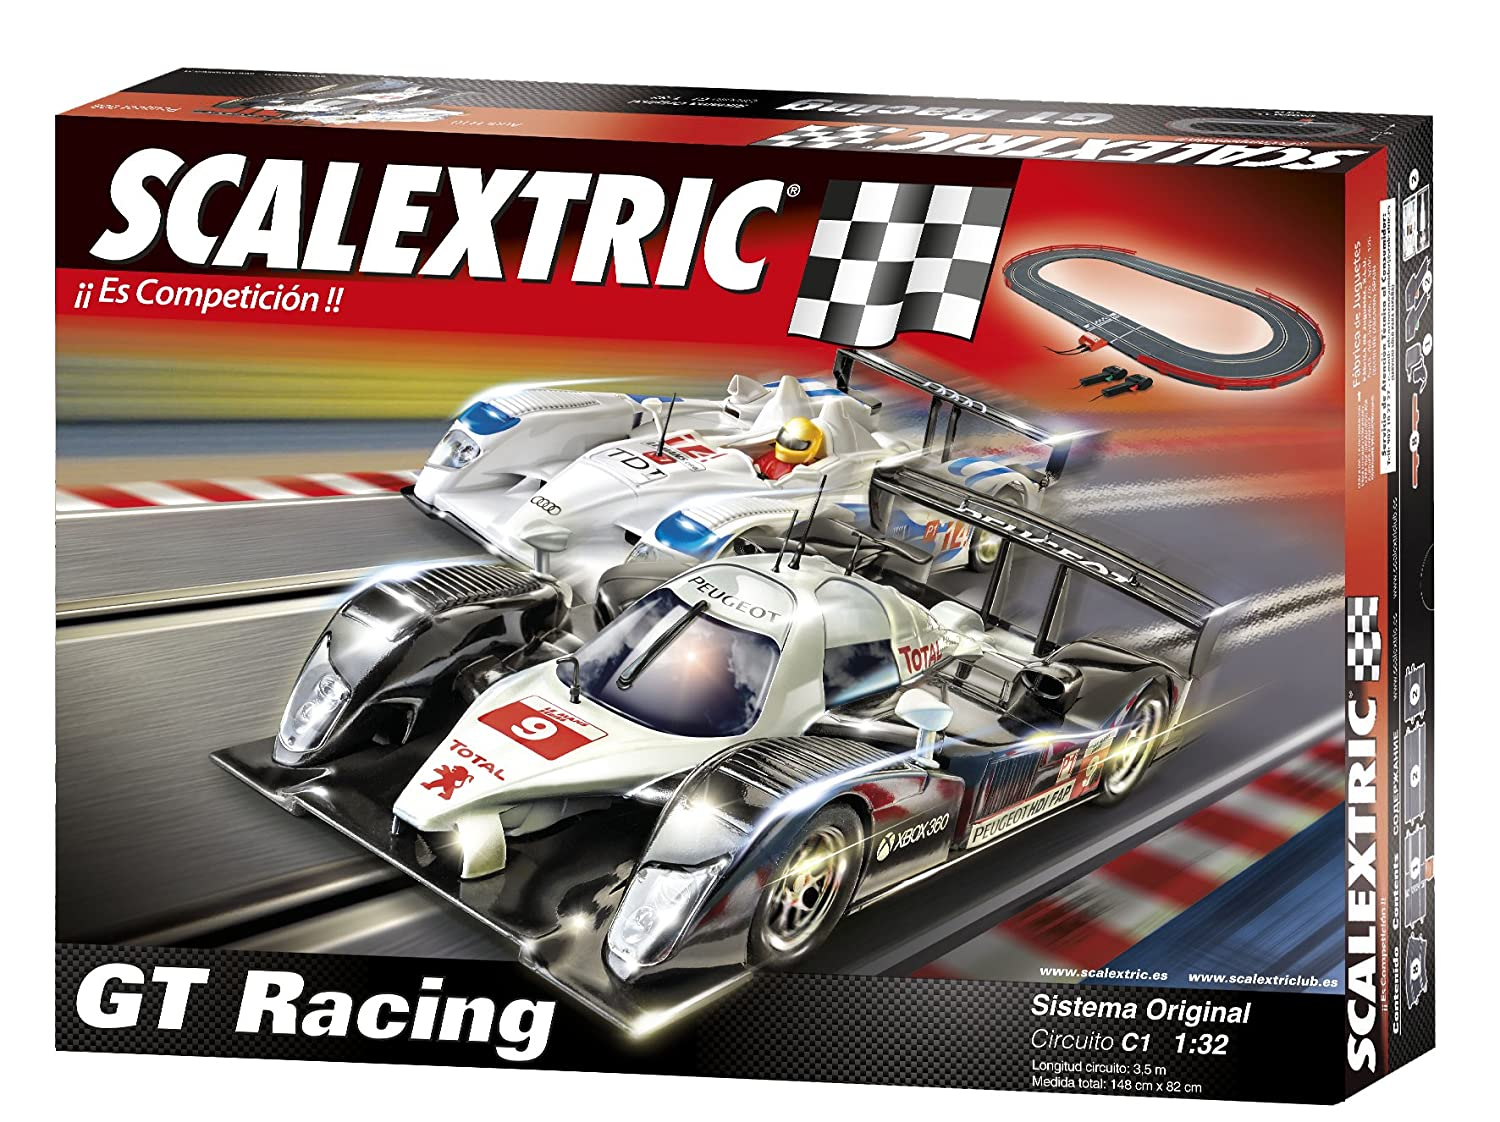 Scalextric Original Circuito C GT Racing con pistas nuevas digitalizables AS